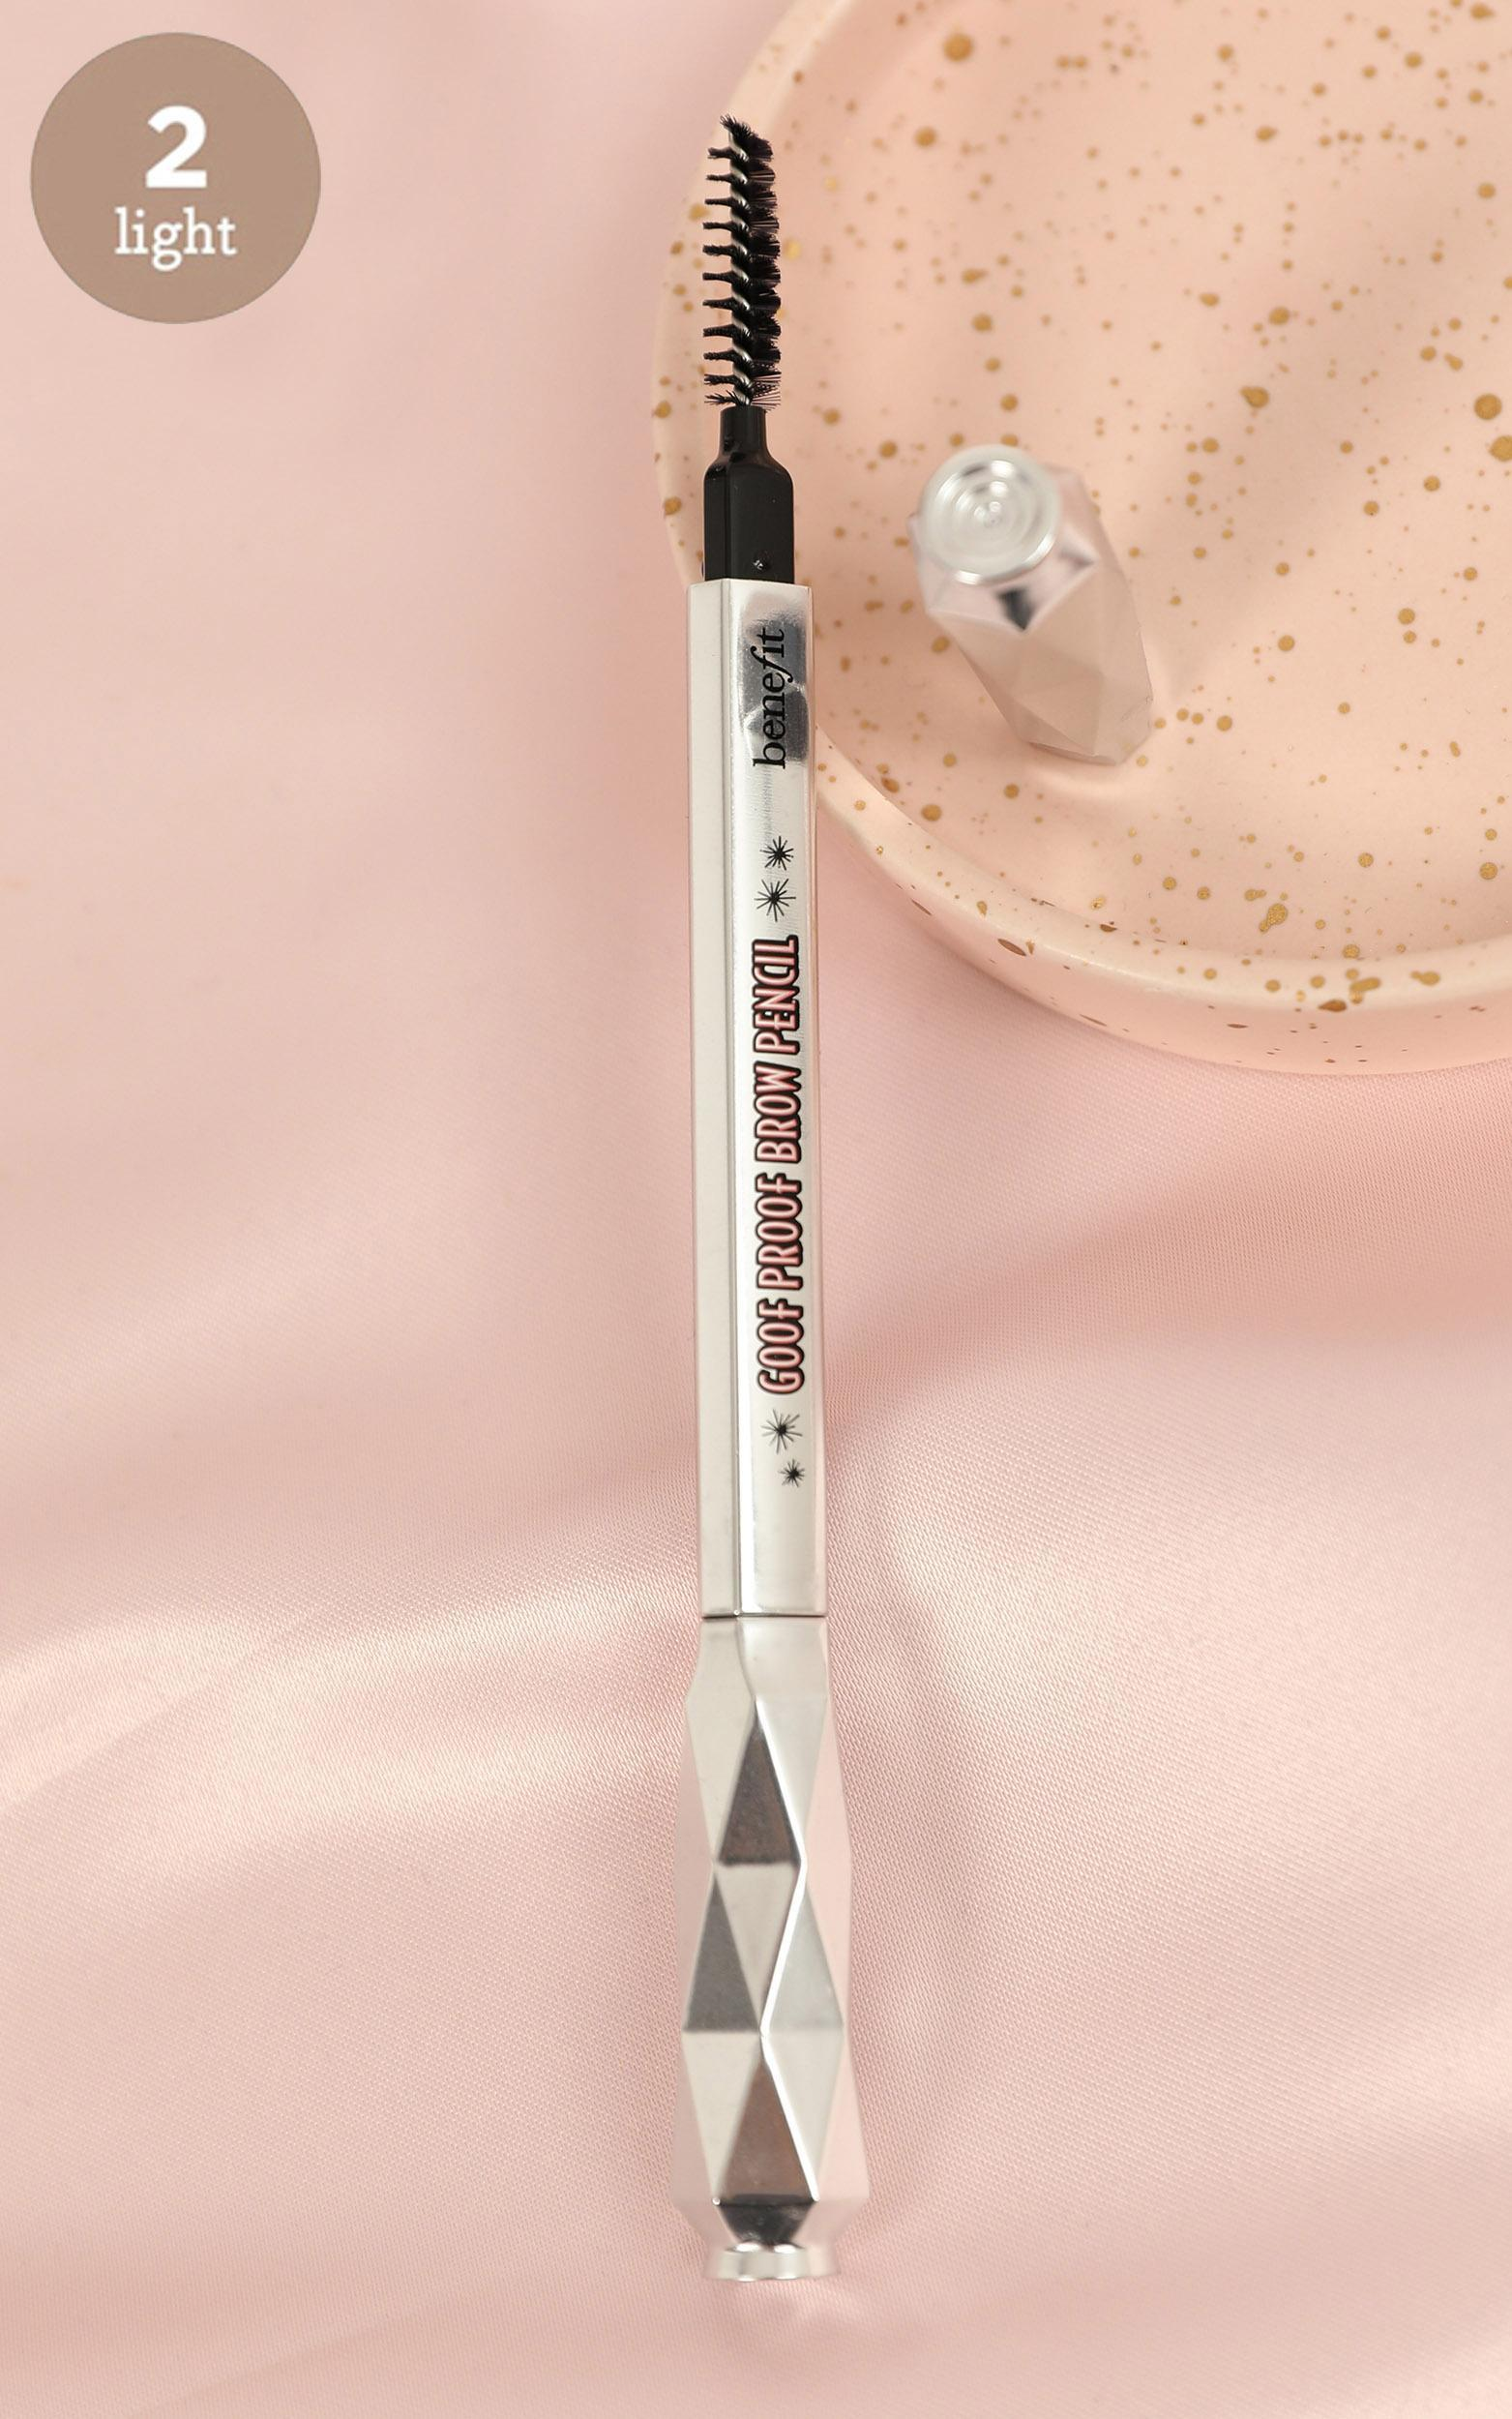 Benefit Cosmetics - Goof Proof Brow Pencil - Shade 2, Brown, hi-res image number null